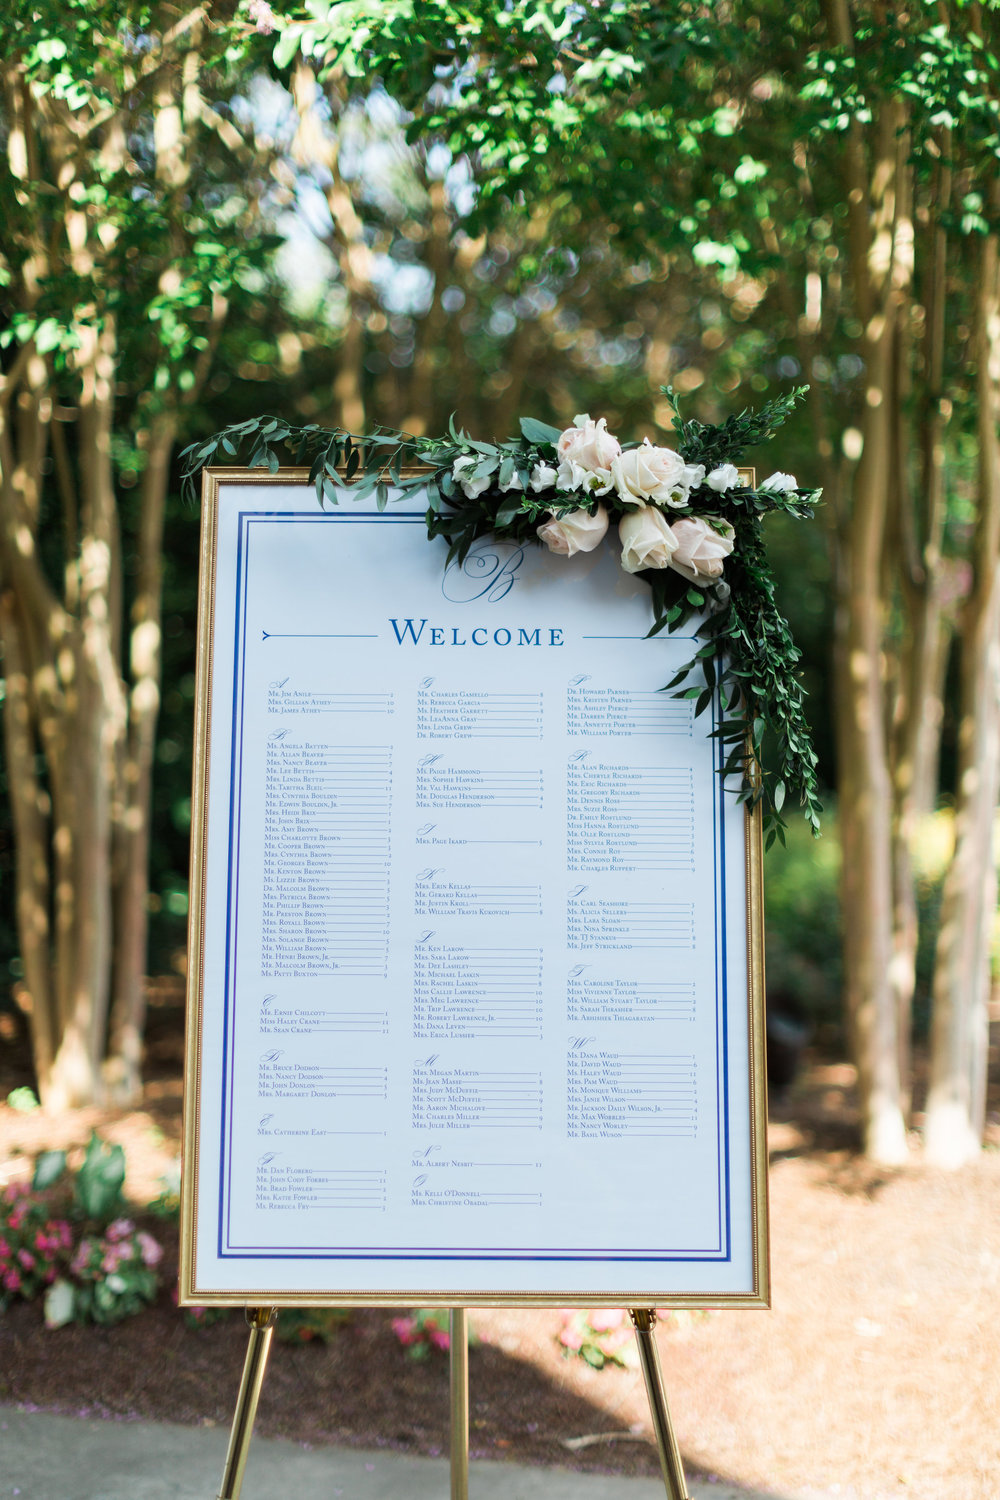 42e95-chapelhillnctraditionalsouthernweddingwelcomesignchapelhillnctraditionalsouthernweddingwelcomesign.jpg